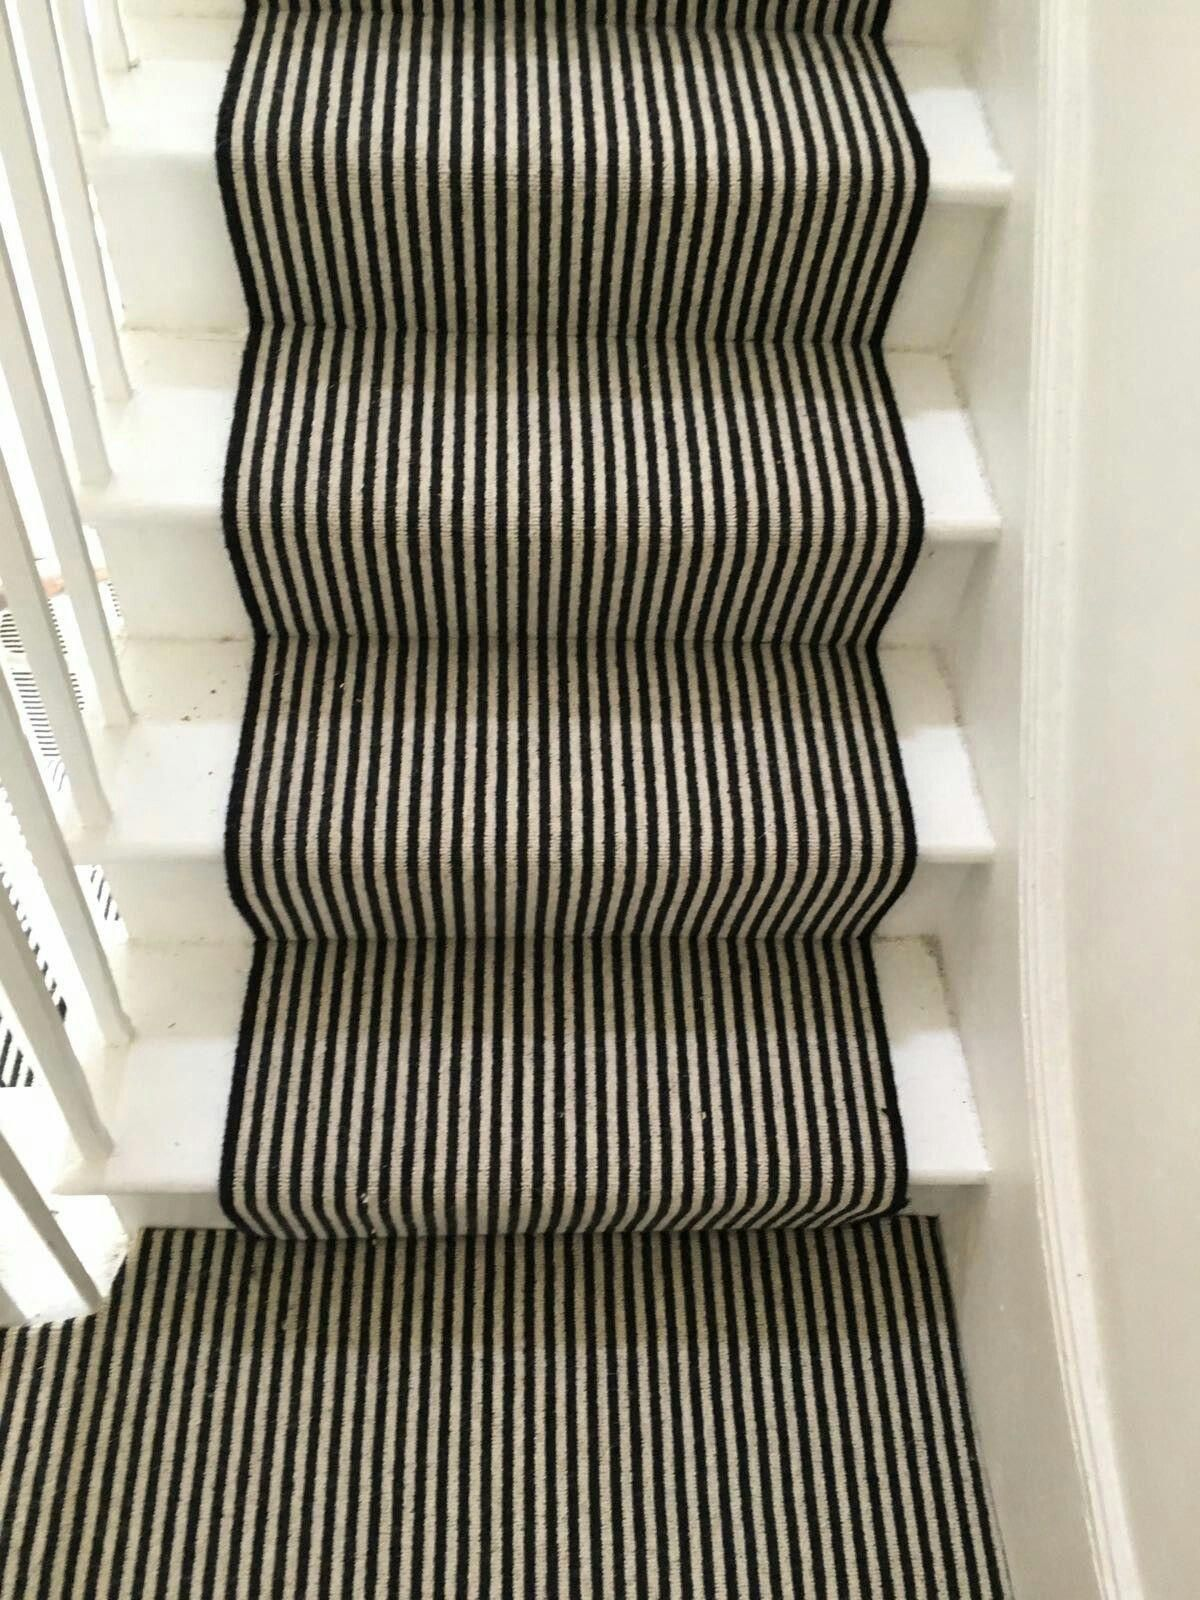 Best Funky Black And White Stair Runner With Black Edges Fitted 640 x 480